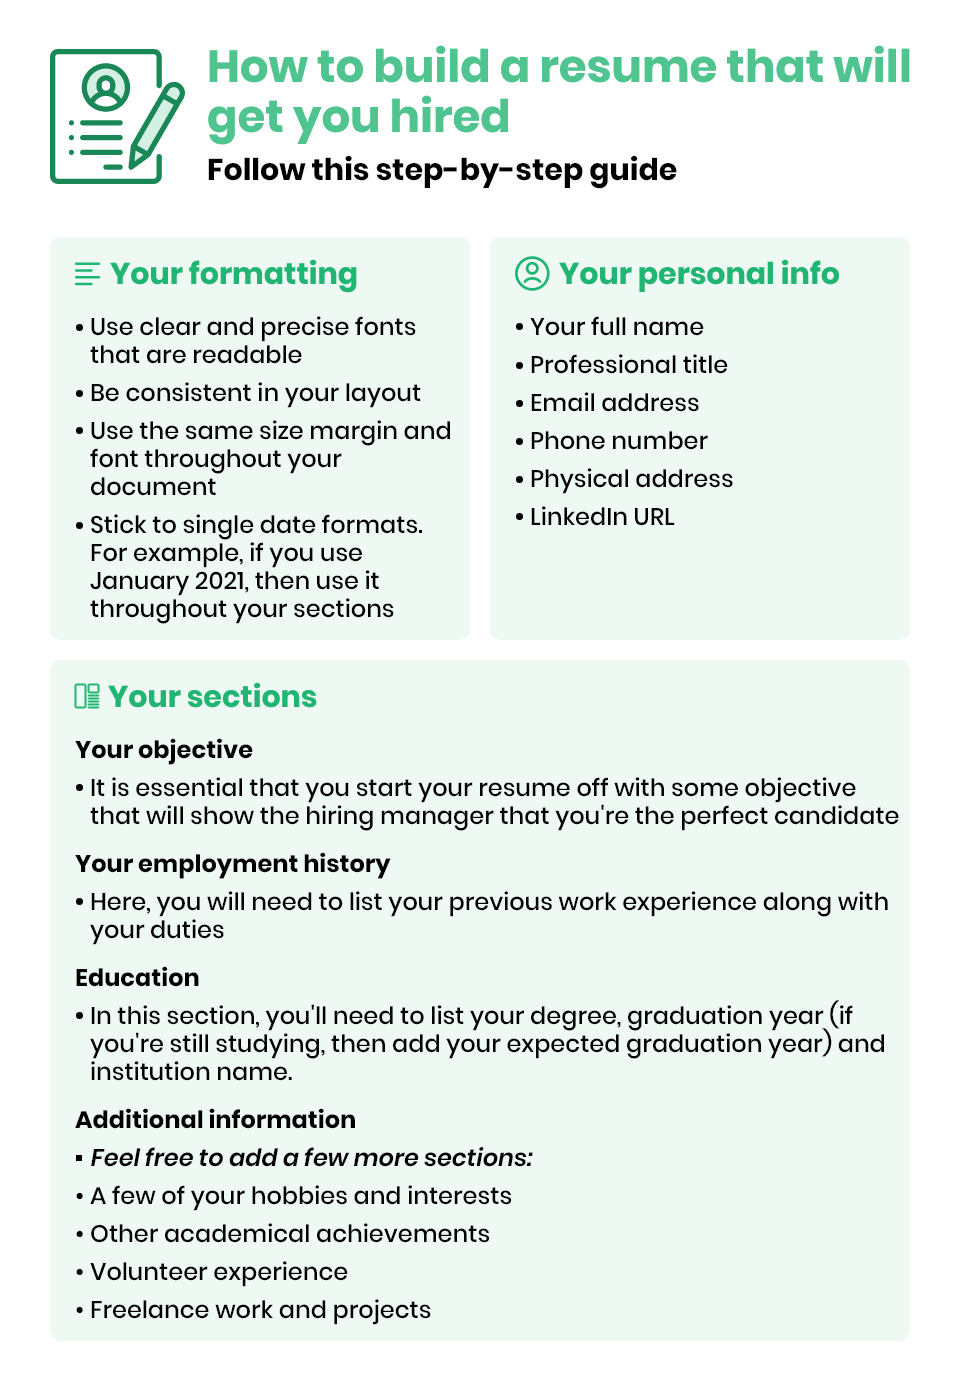 How to build a resume guide